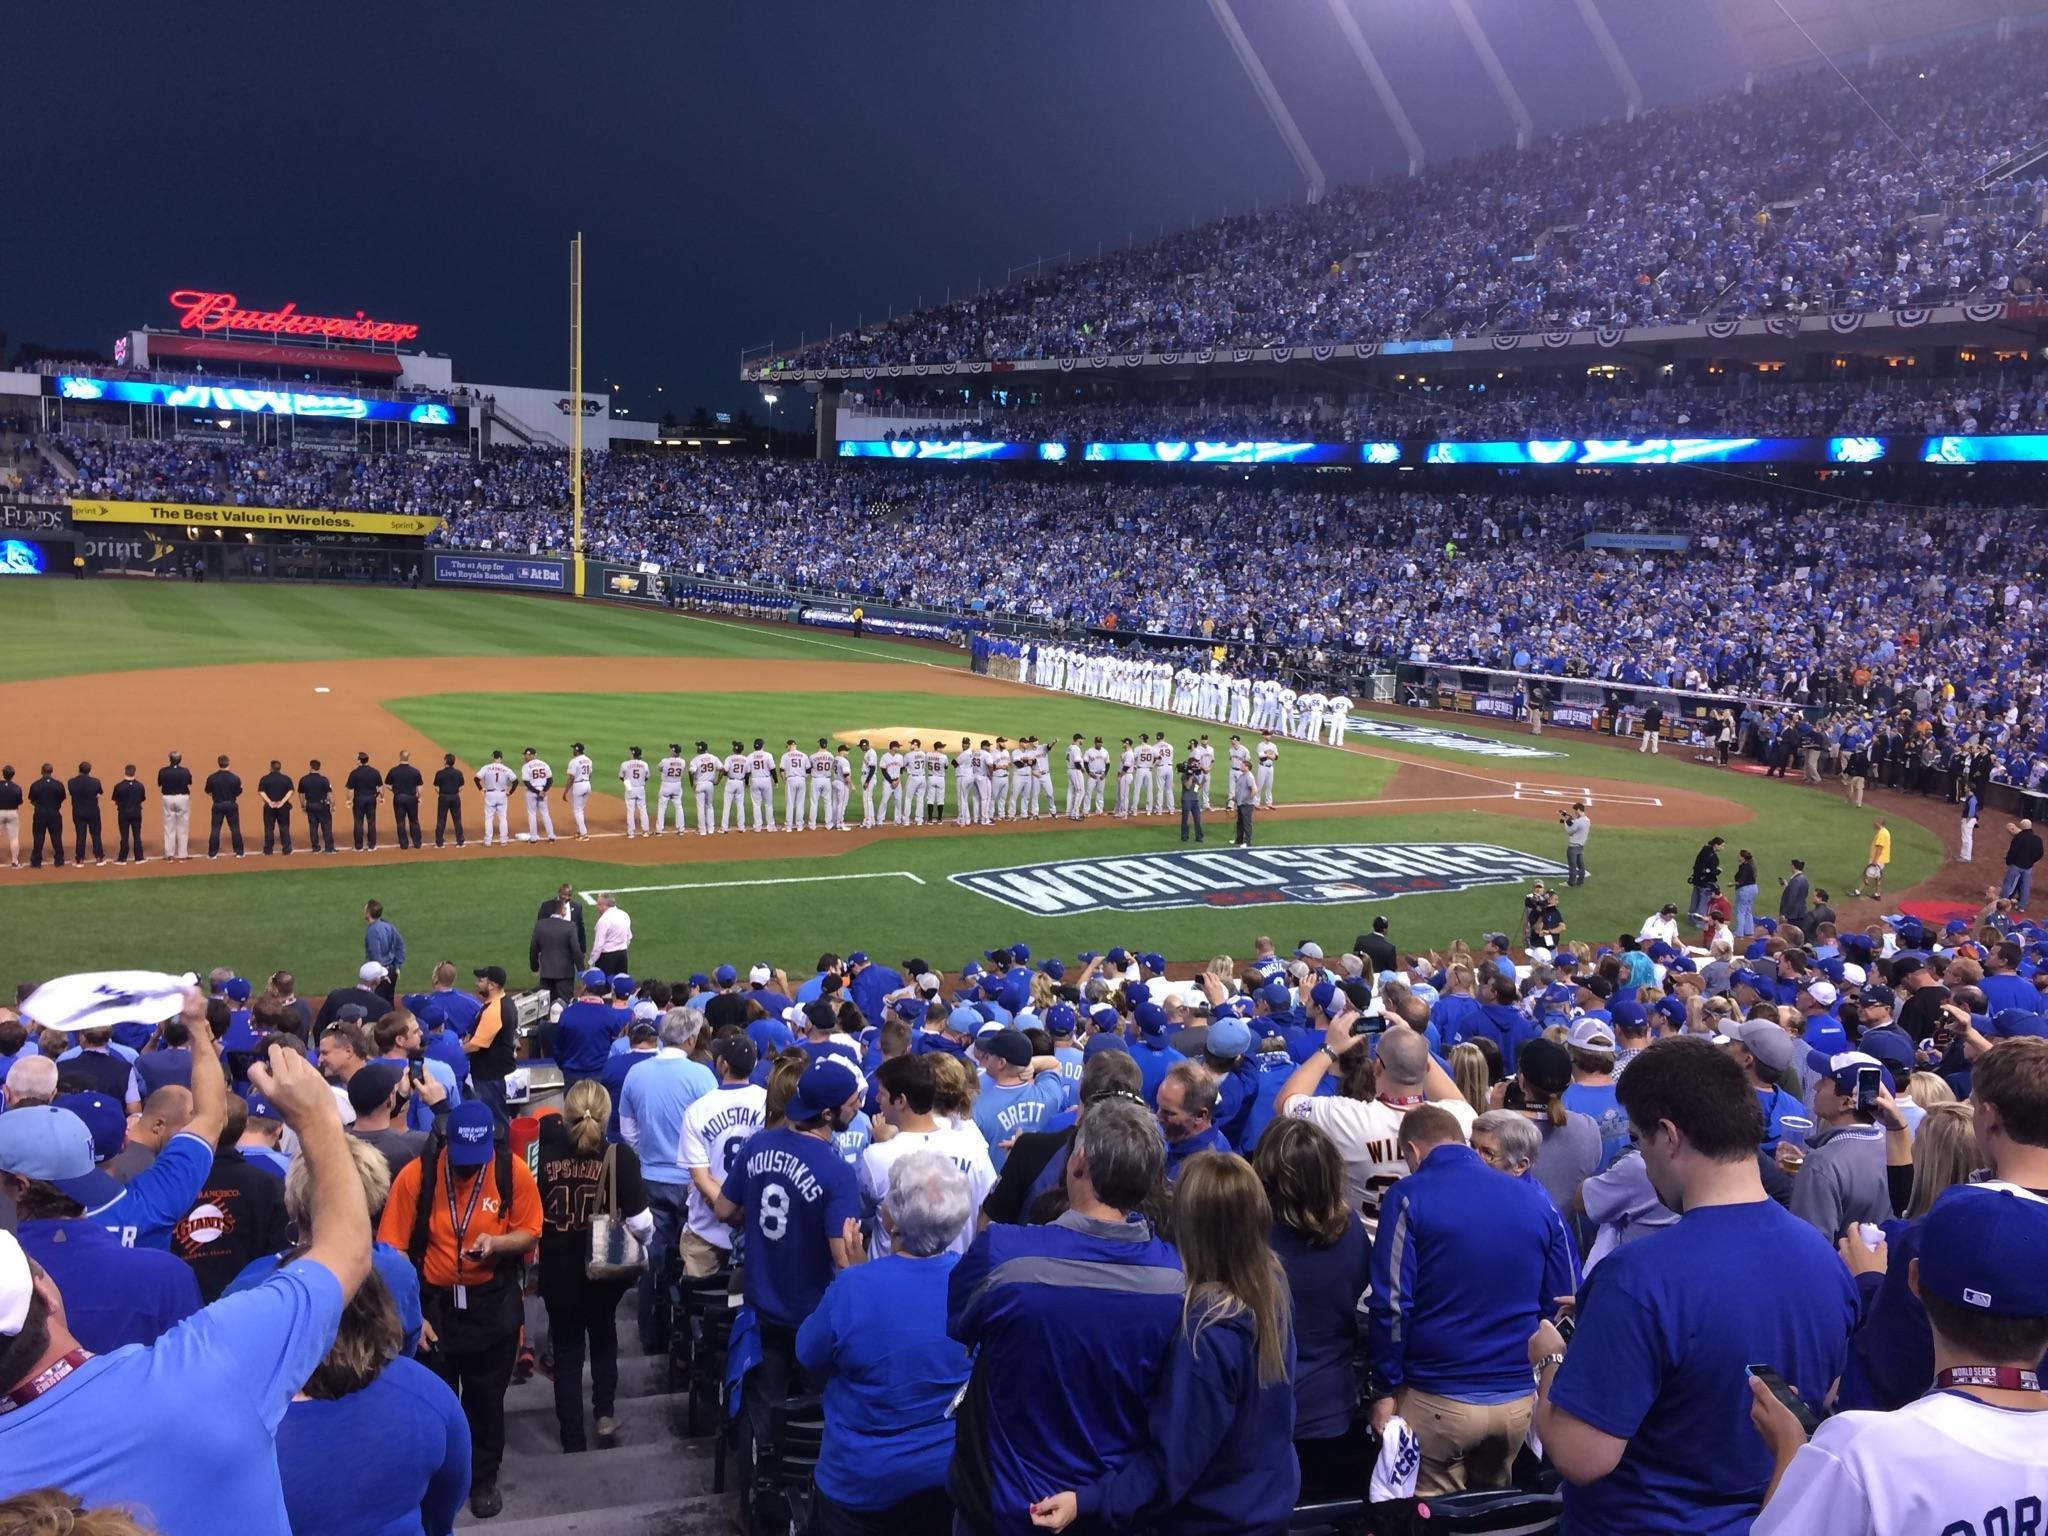 The Opening Line Up Of Game One World Series At Kauffman Stadium With Kansas City Royals Going Against San Francisco Giants